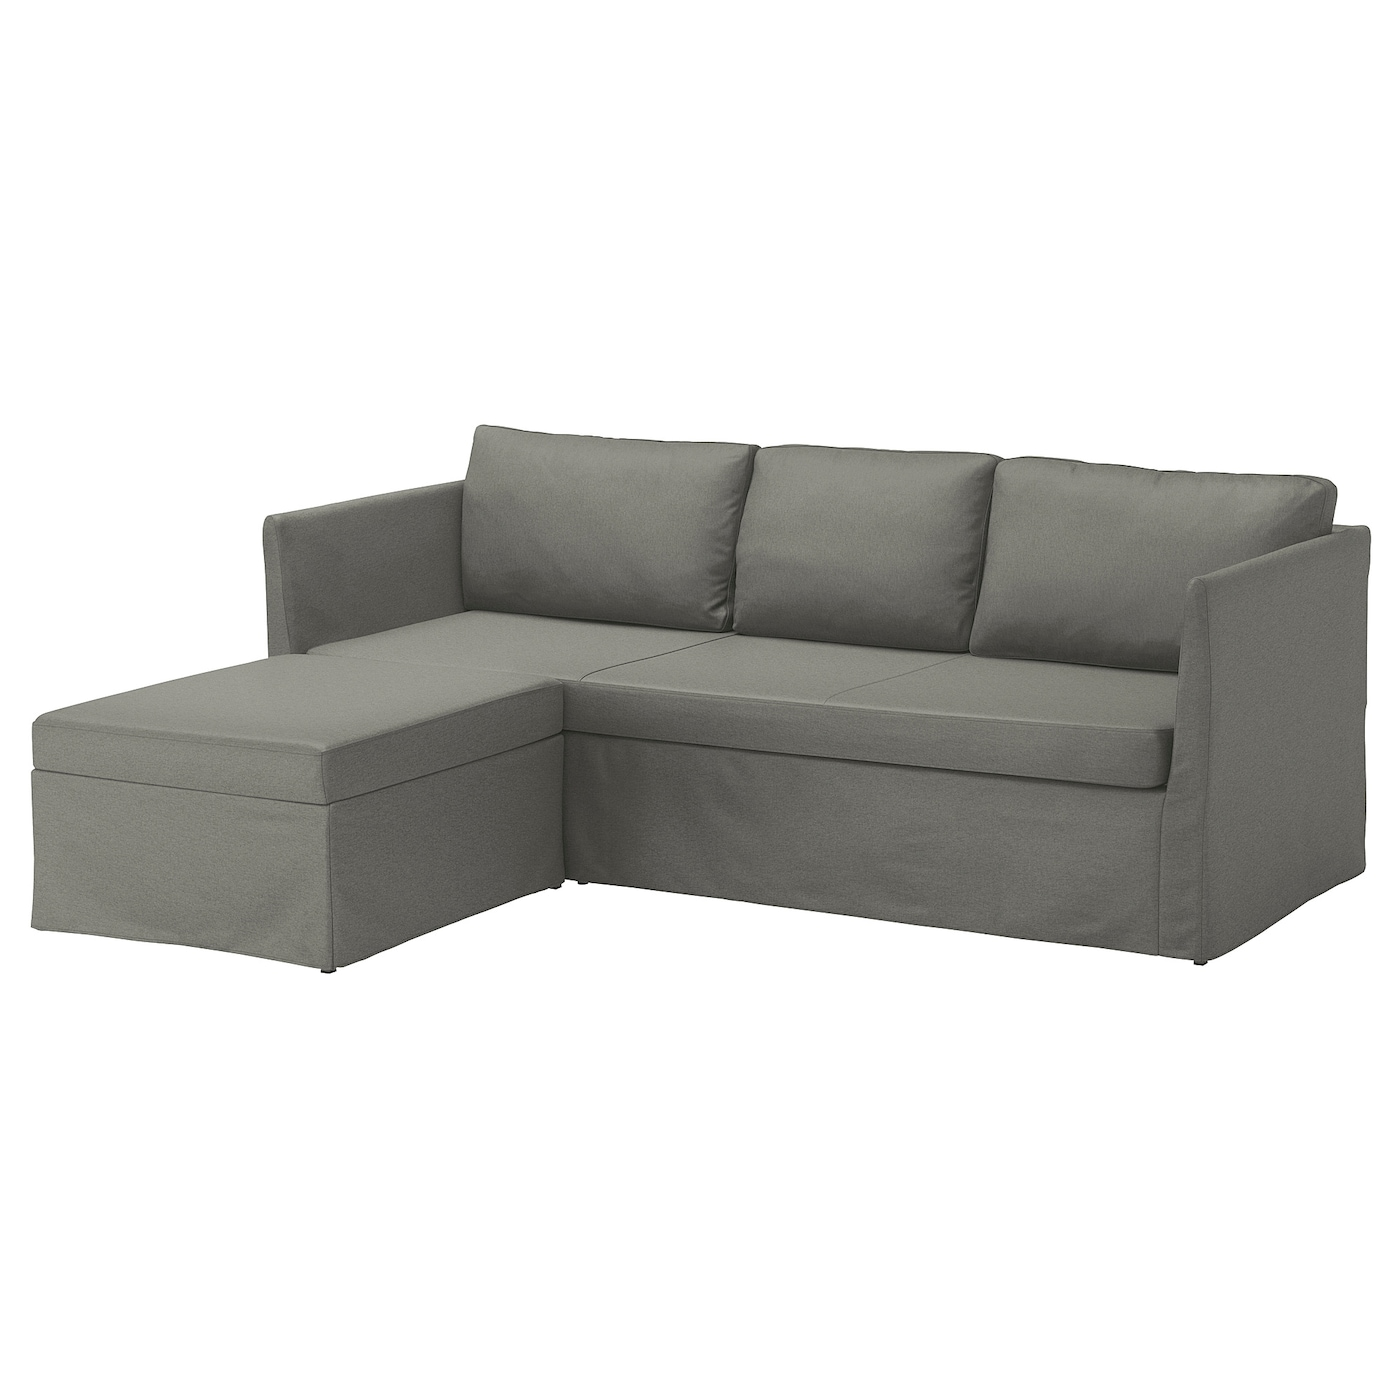 corner sofa bed. IKEA BRÅTHULT Corner Sofa-bed You Sit Comfortably Thanks To The Resilient Foam And Springy Sofa Bed G